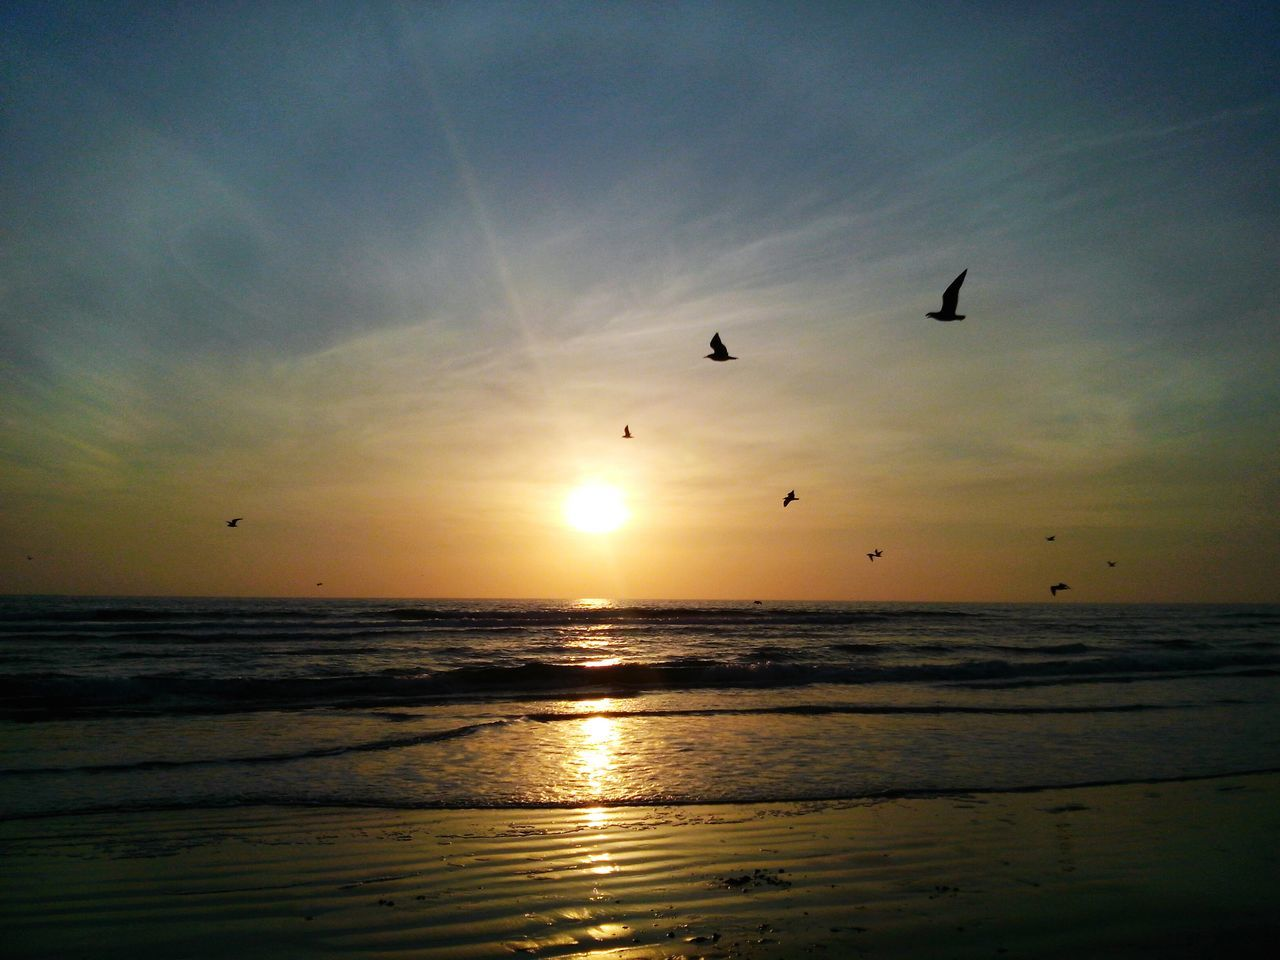 sunset, sea, horizon over water, beauty in nature, scenics, beach, sun, nature, sky, water, tranquil scene, silhouette, idyllic, tranquility, bird, outdoors, sunlight, reflection, flying, sand, cloud - sky, no people, vacations, travel destinations, animal themes, wave, day